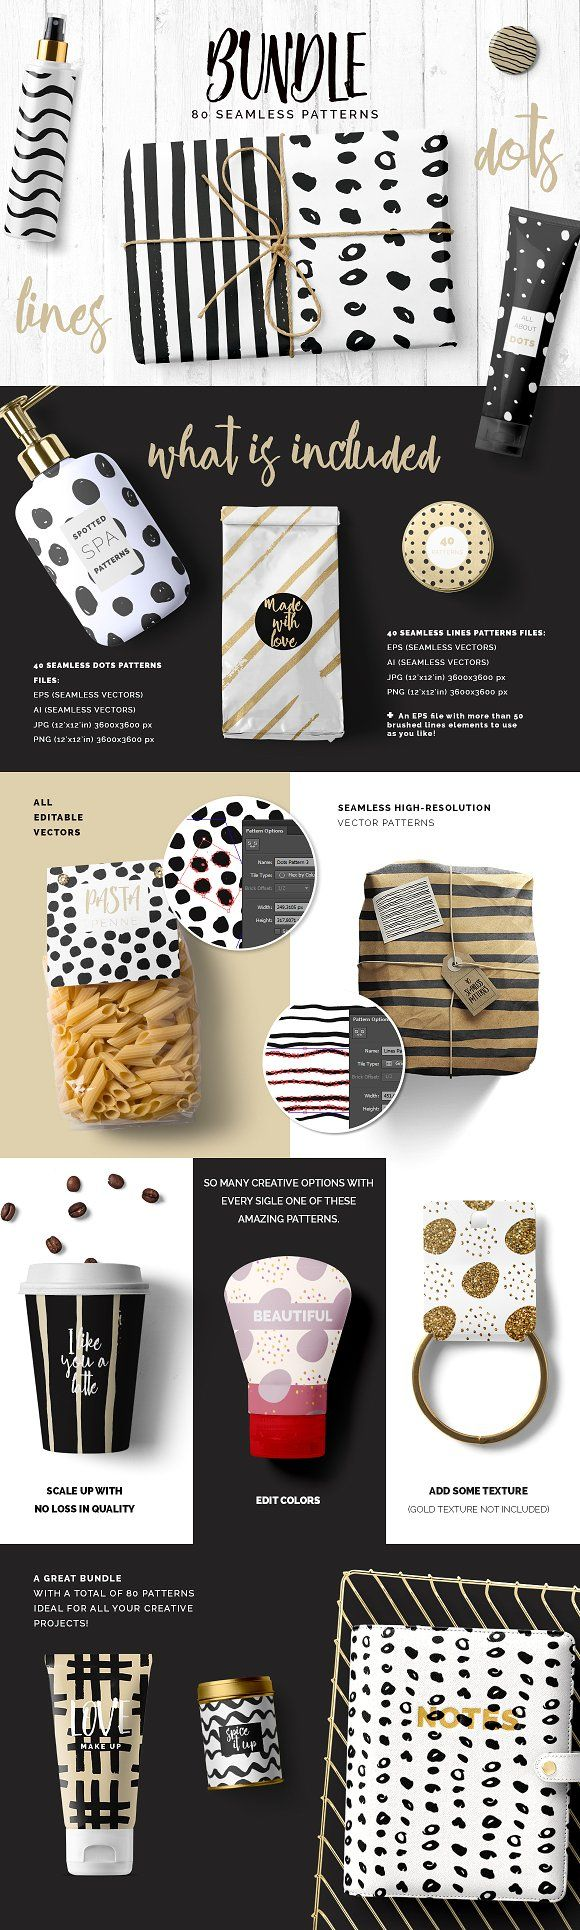 Dots & Lines Patterns Bundle by Youandigraphics on @creativemarket